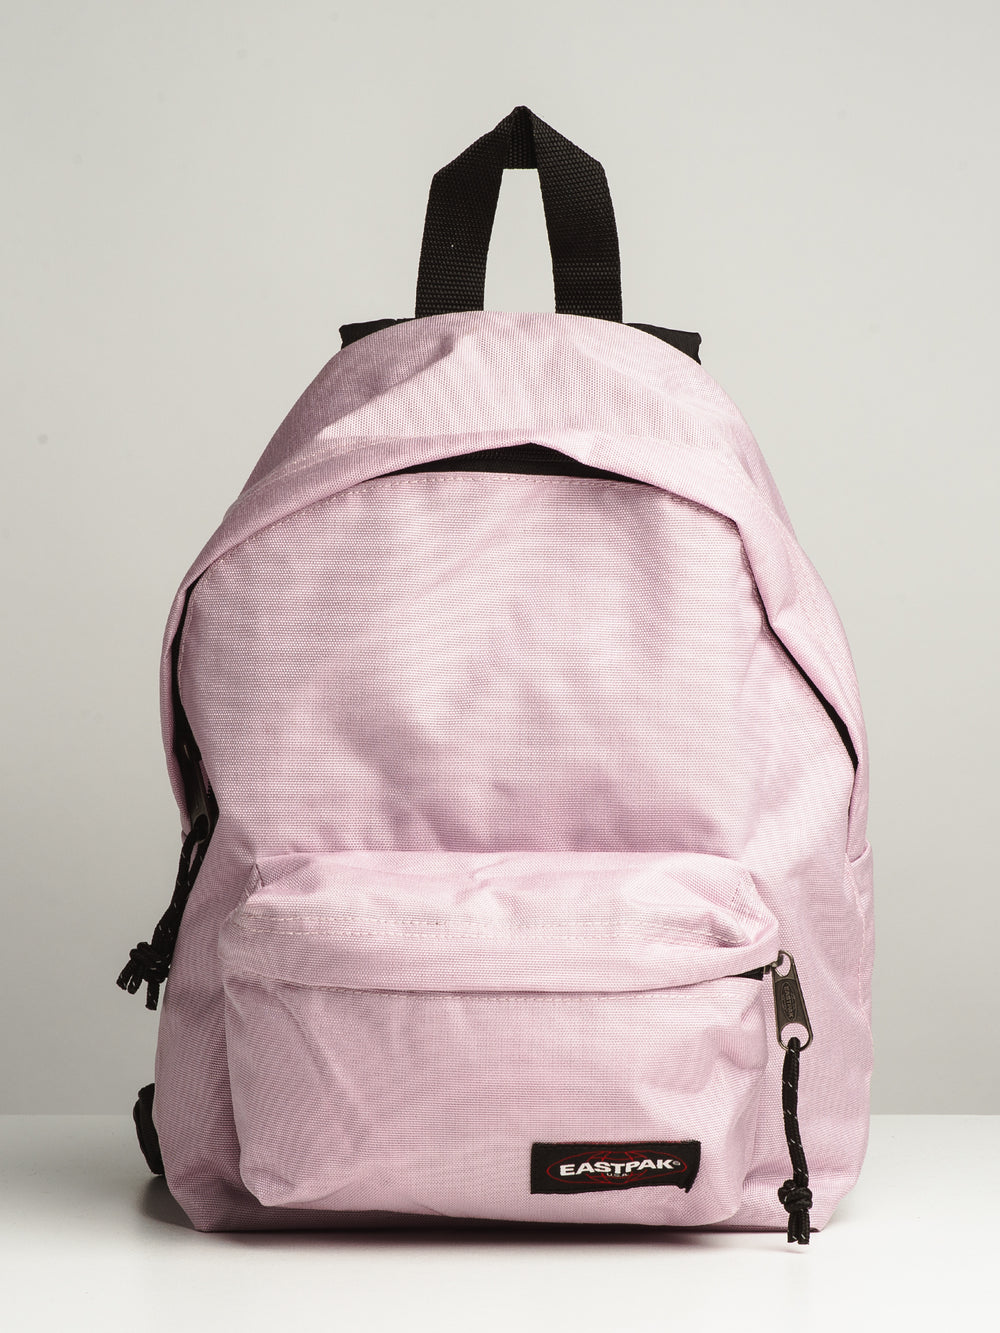 ORBIT 10L BACKPACK - LATEST LILAC - CLEARANCE